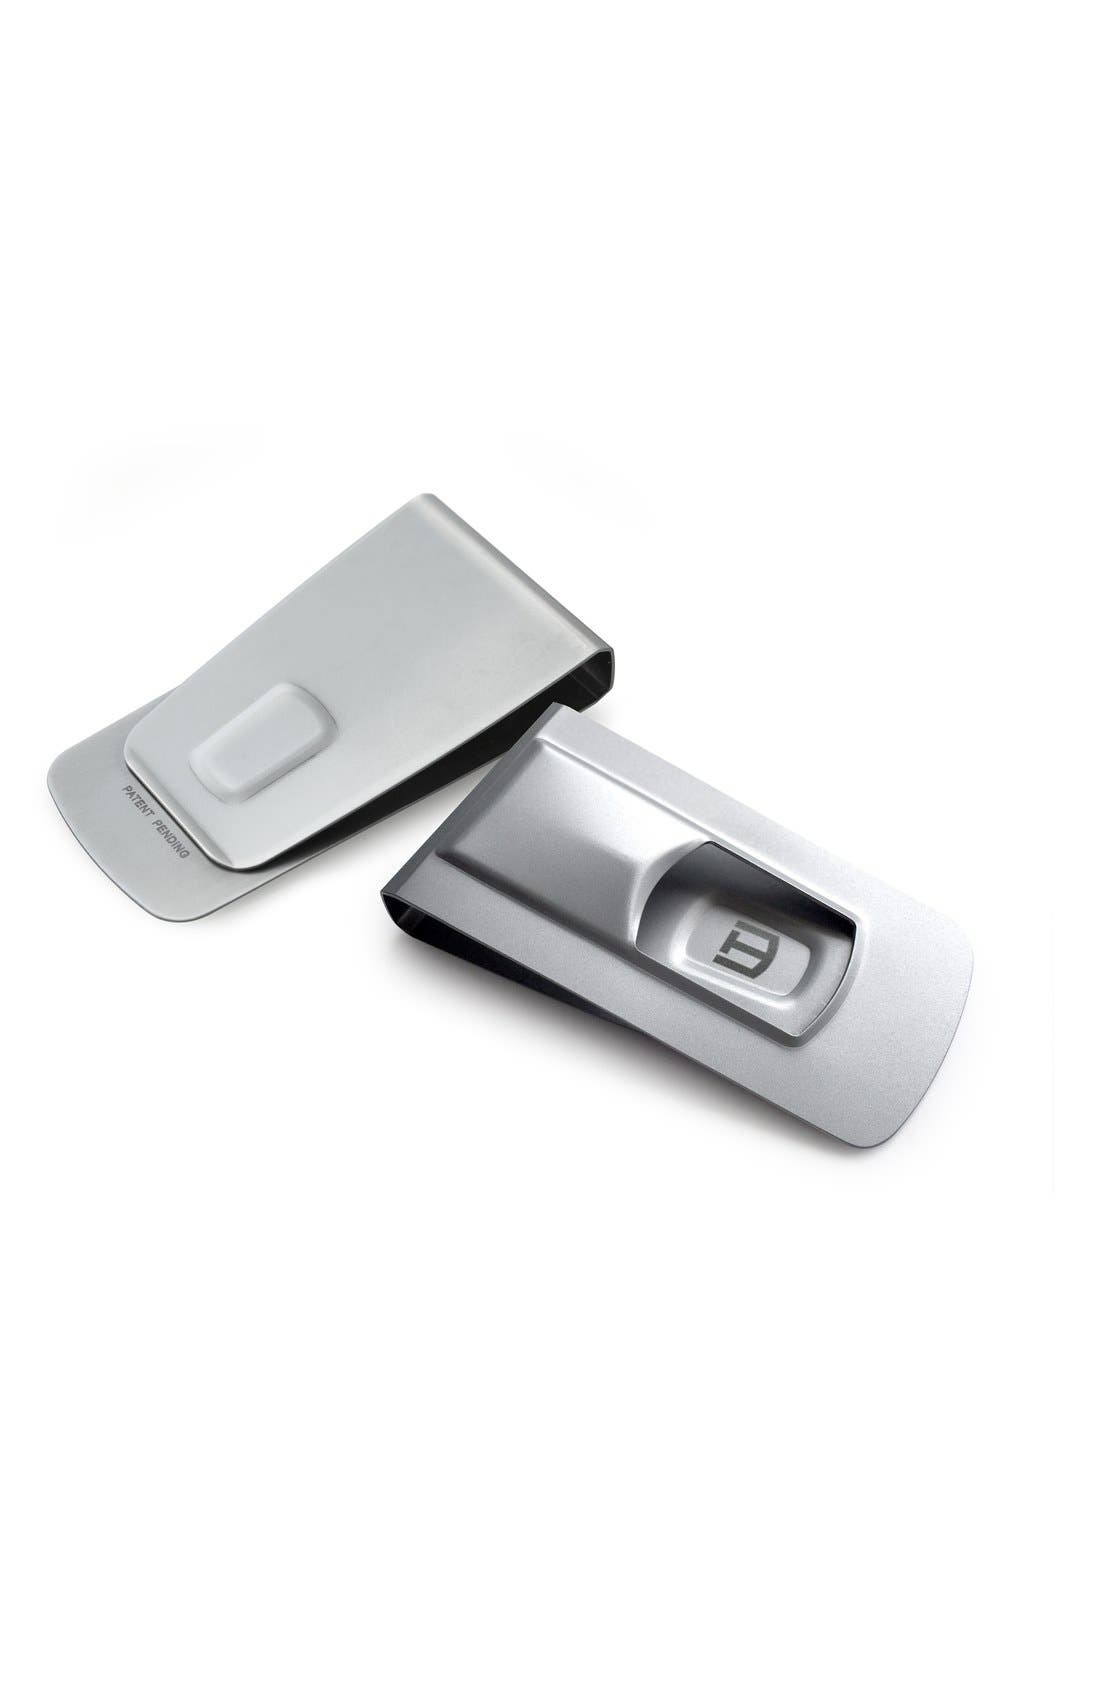 'Tightwad' Money Clip,                         Main,                         color, SILVER STEEL